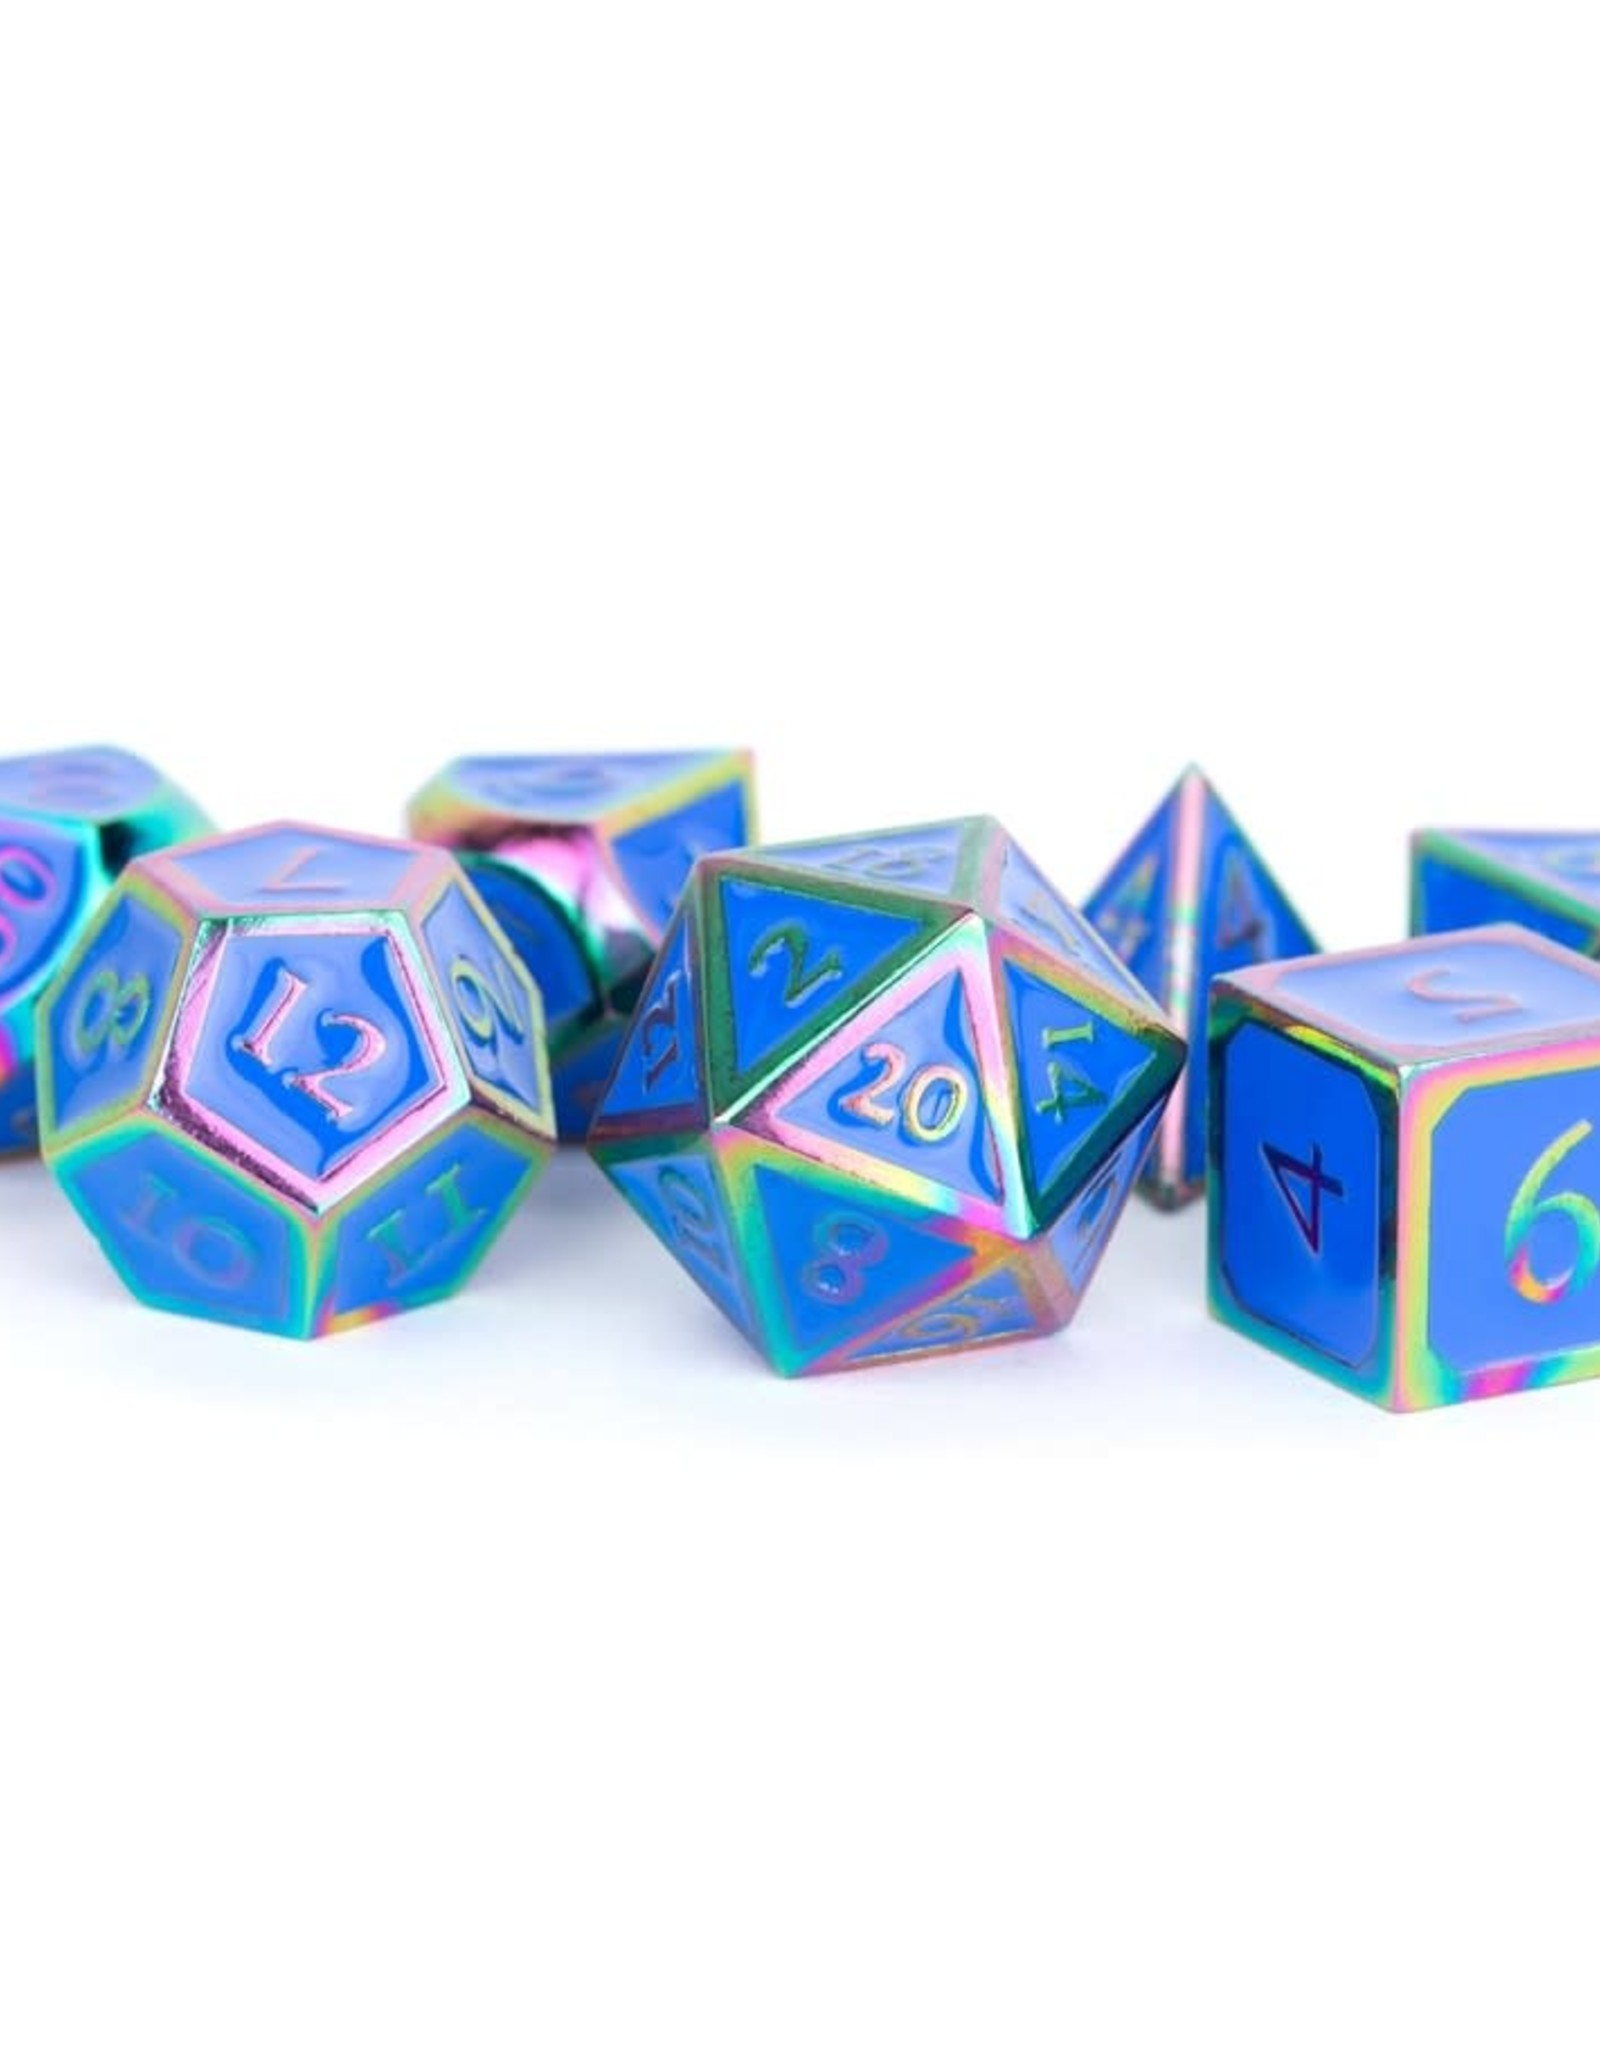 Metallic Dice Games Metal Polyhedral Dice Set: Rainbow with Blue Enamel (7)